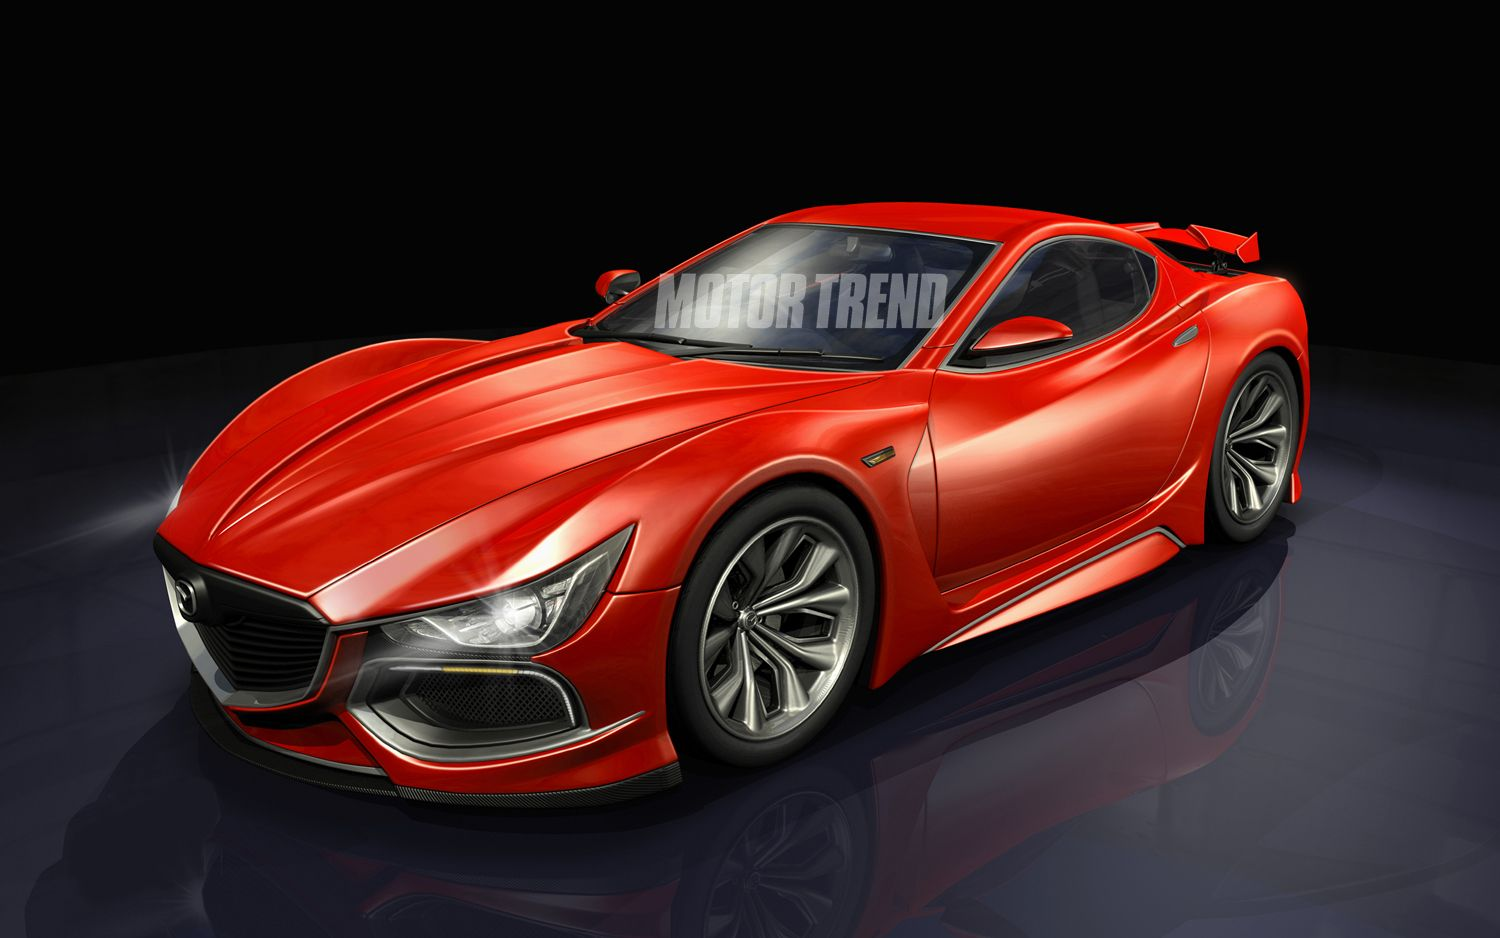 Mazda Rx 7 2017 >> We Hear Next Mazda Rx 7 Turbo Rotary Could Make 450 Hp Motor Trend